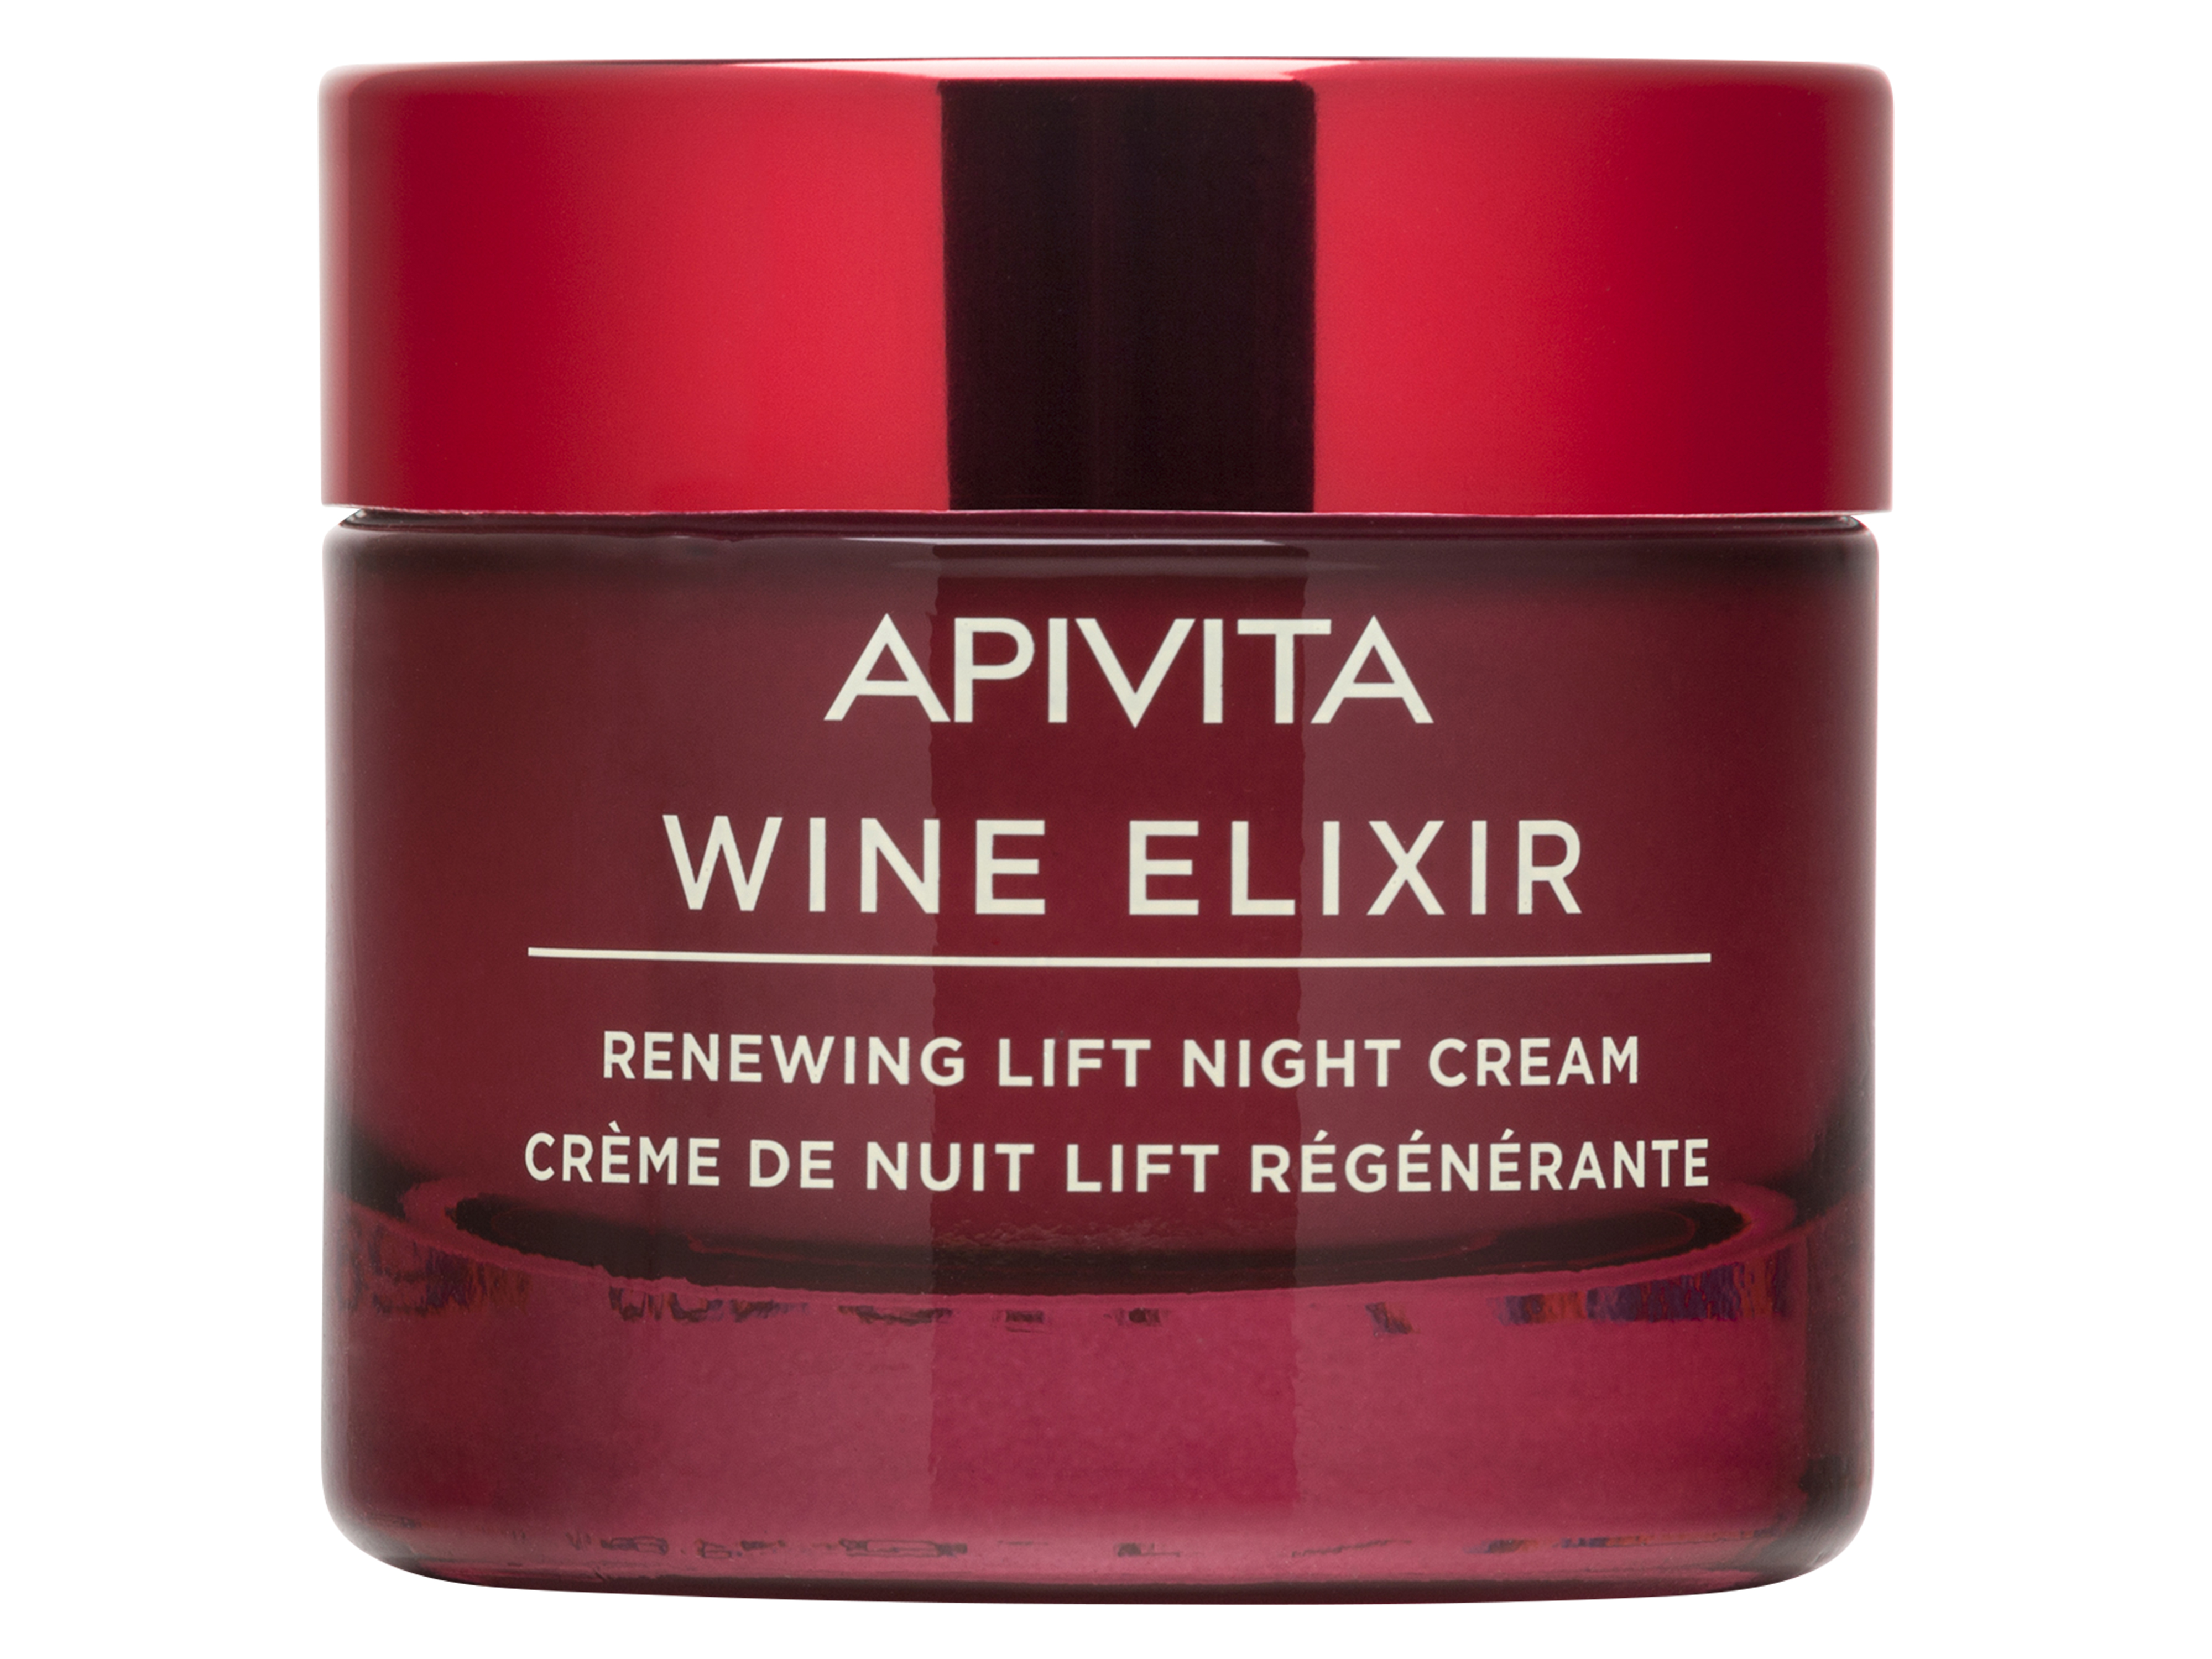 Apivita Wine Elixir Anti Age Night Cream, 50 ml